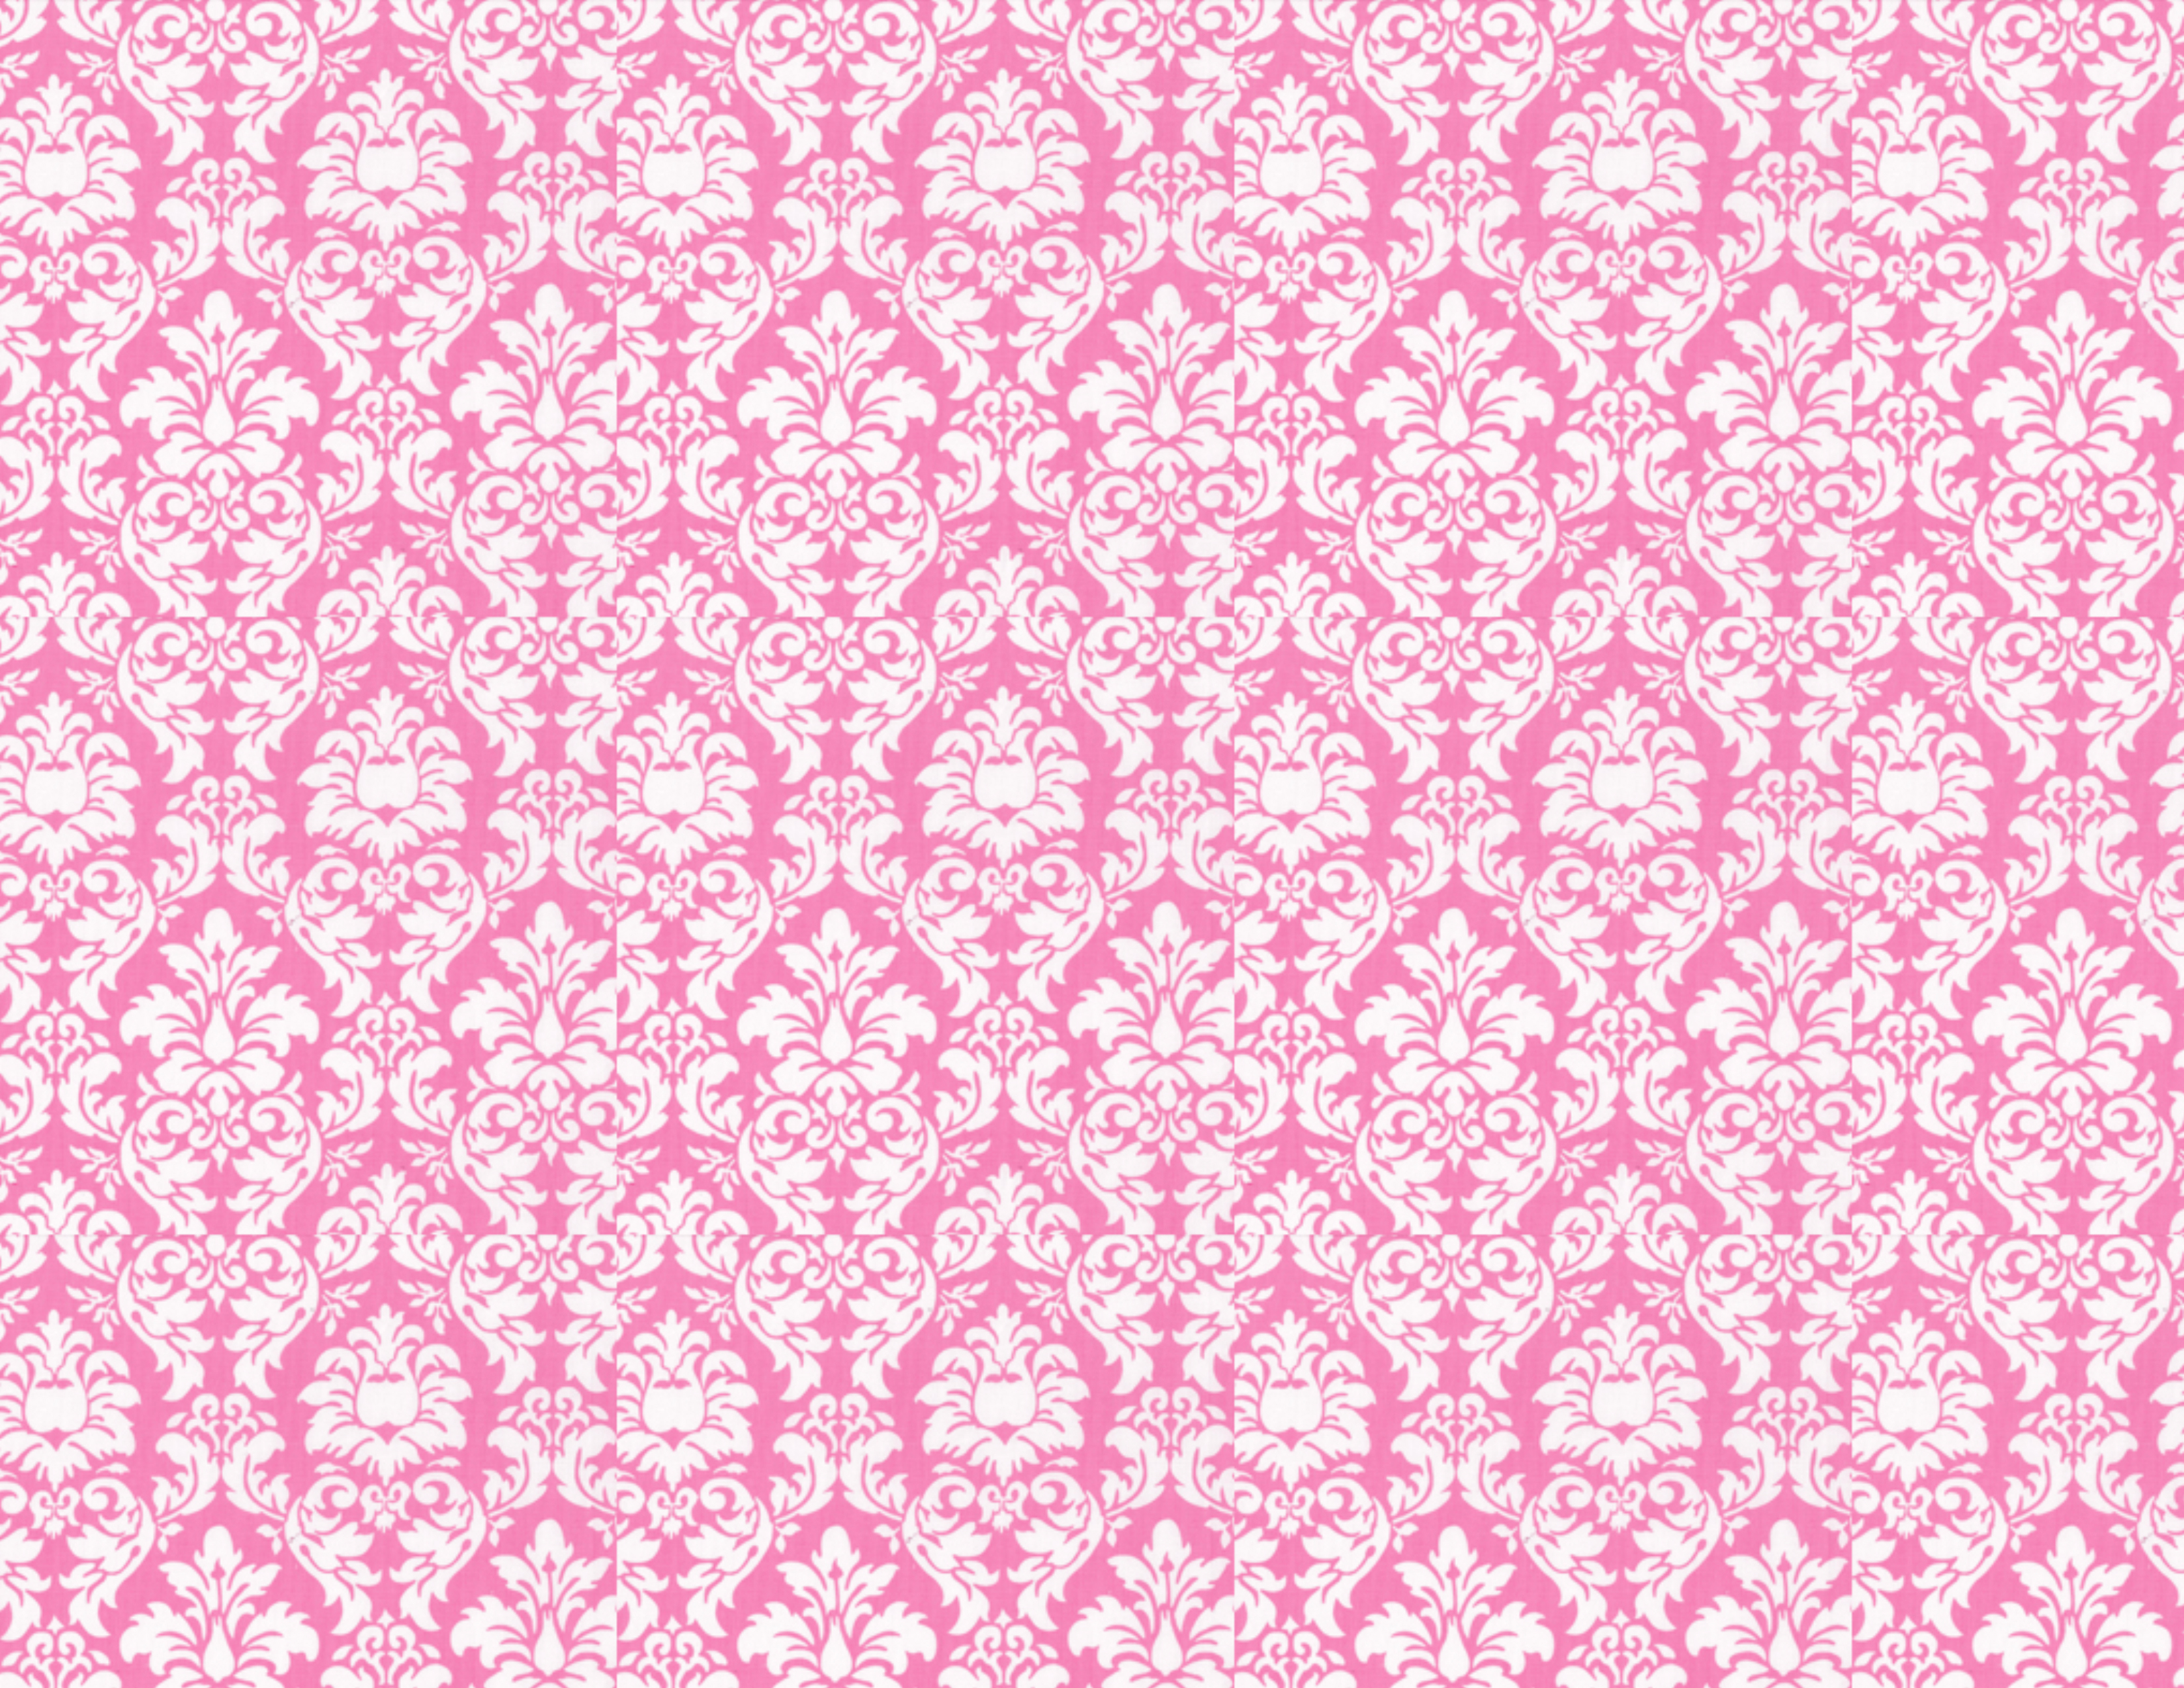 5 Images of Pink Paper Printable